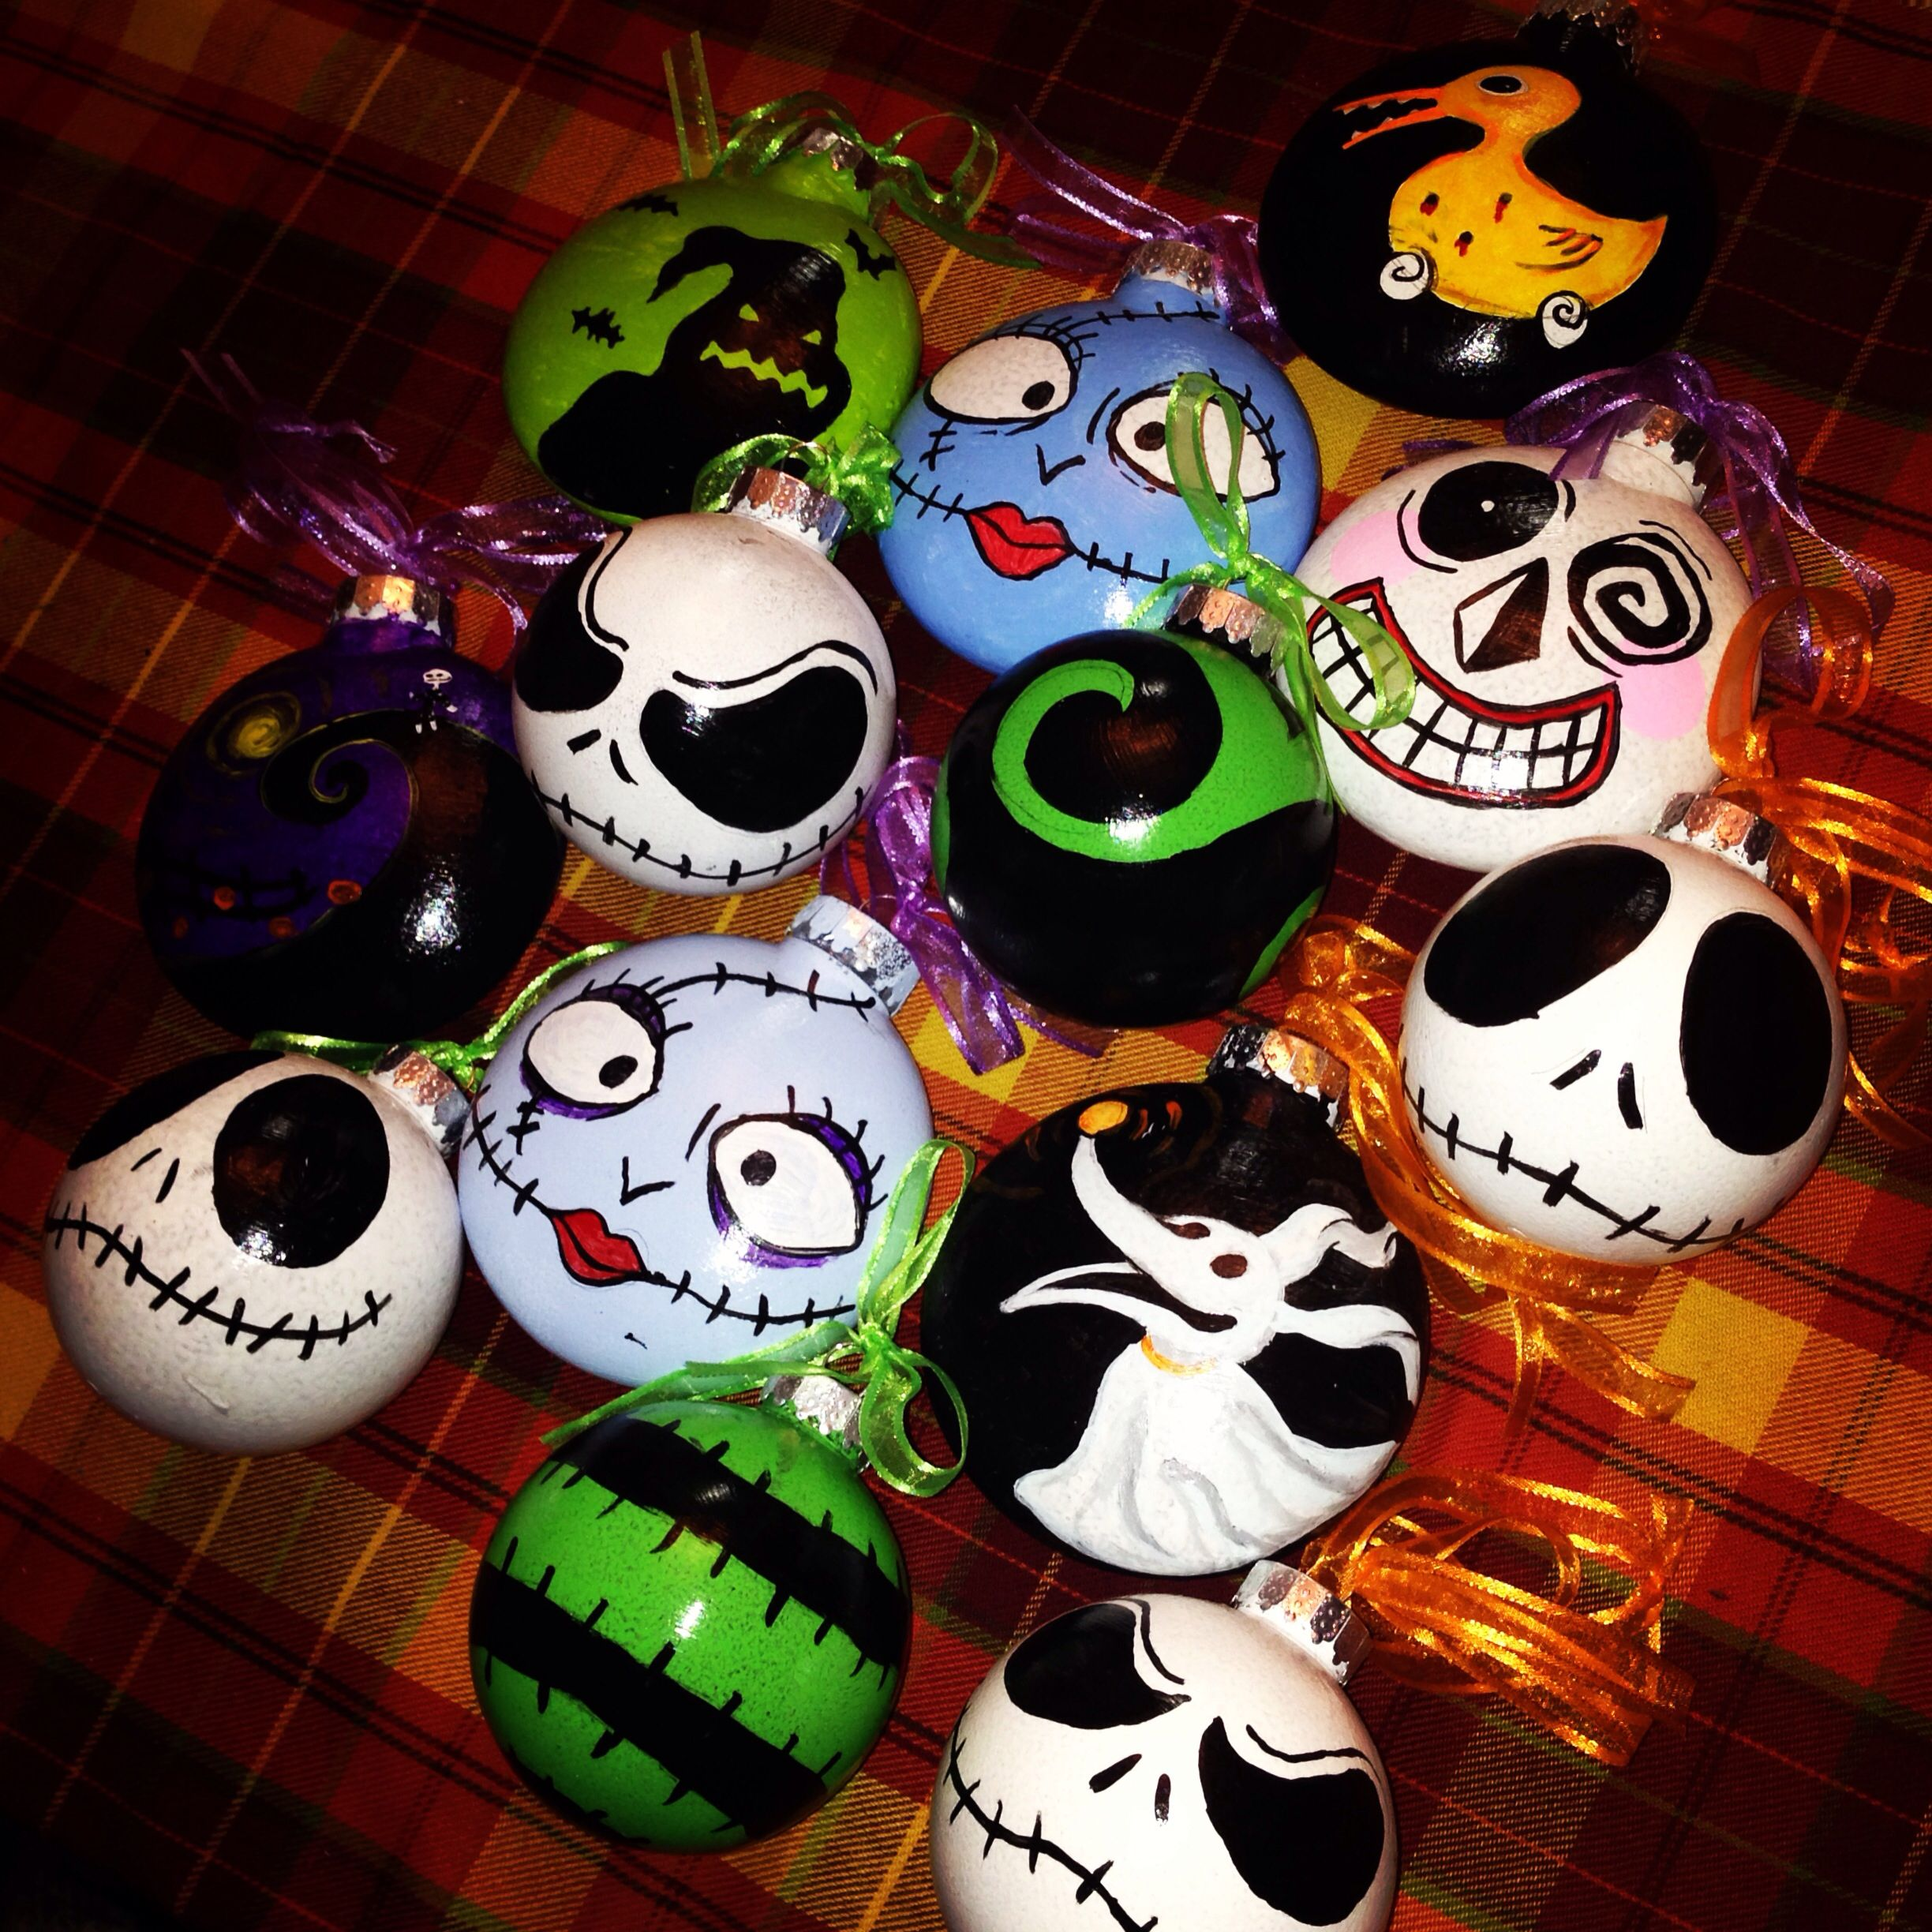 Hand painted nightmare before christmas tree ornaments ...